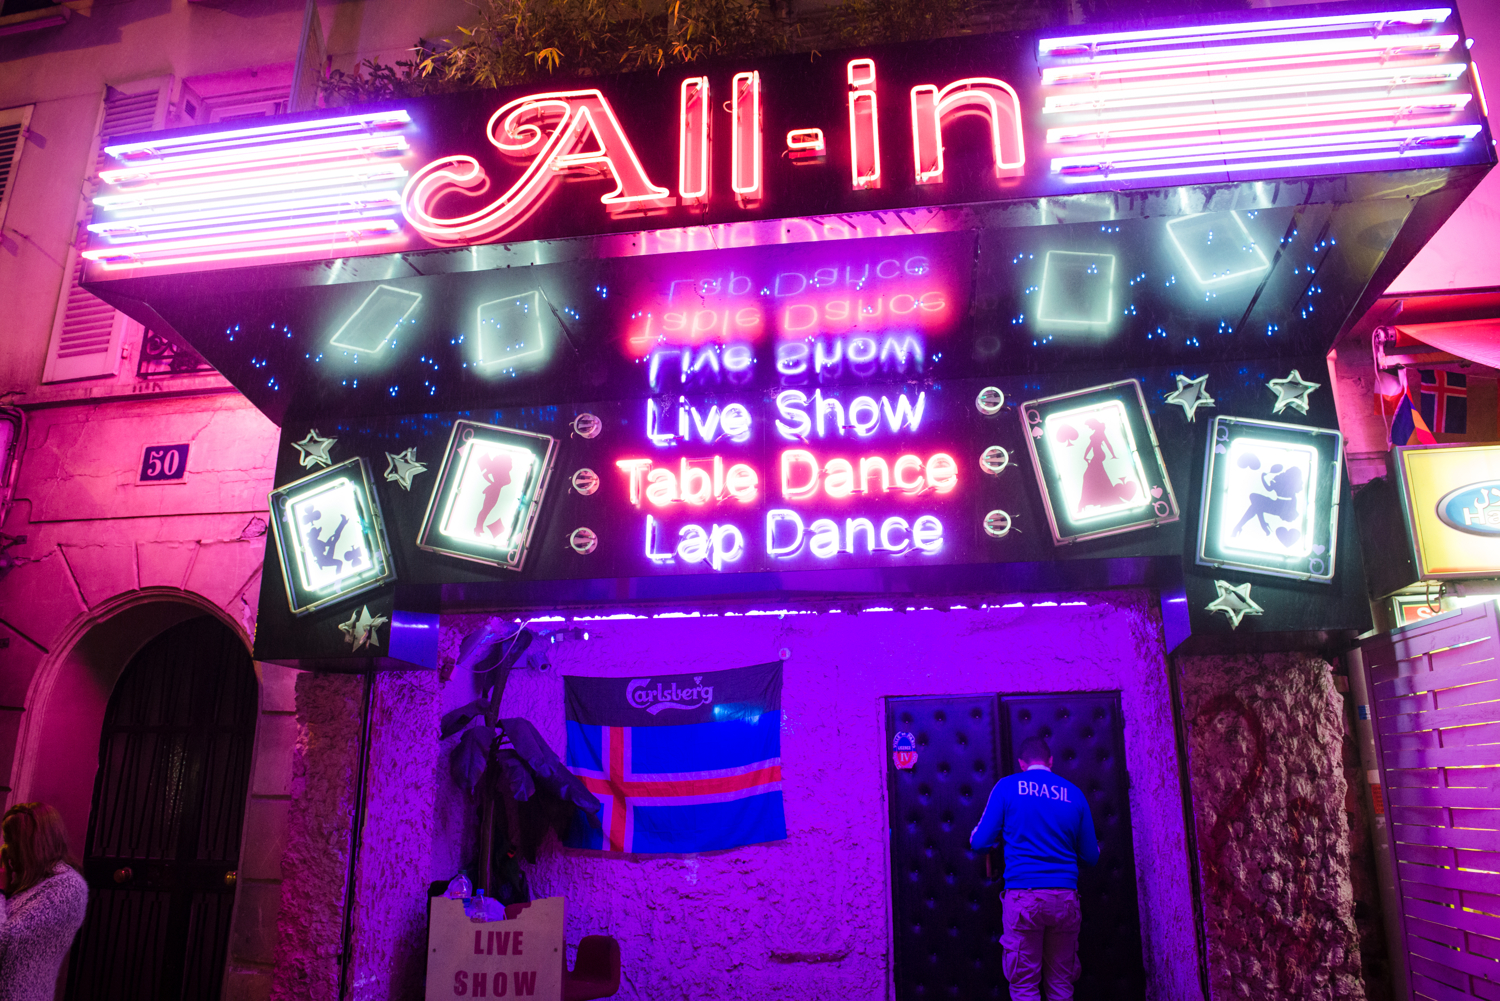 France, Paris. A strip club in the Pigalle district of Paris uses the Icelandic flag to attract visiting tourists the night of the match between Iceland & Austria in the Euro Cup. During the Euro Cup held in France, Pigalle, a popular district with bar, strip clubs and sex shops, saw large numbers of foreign supporters. Bars & strip clubs would typically hang flags of the opposing teams attempting to attract tourist clientele.